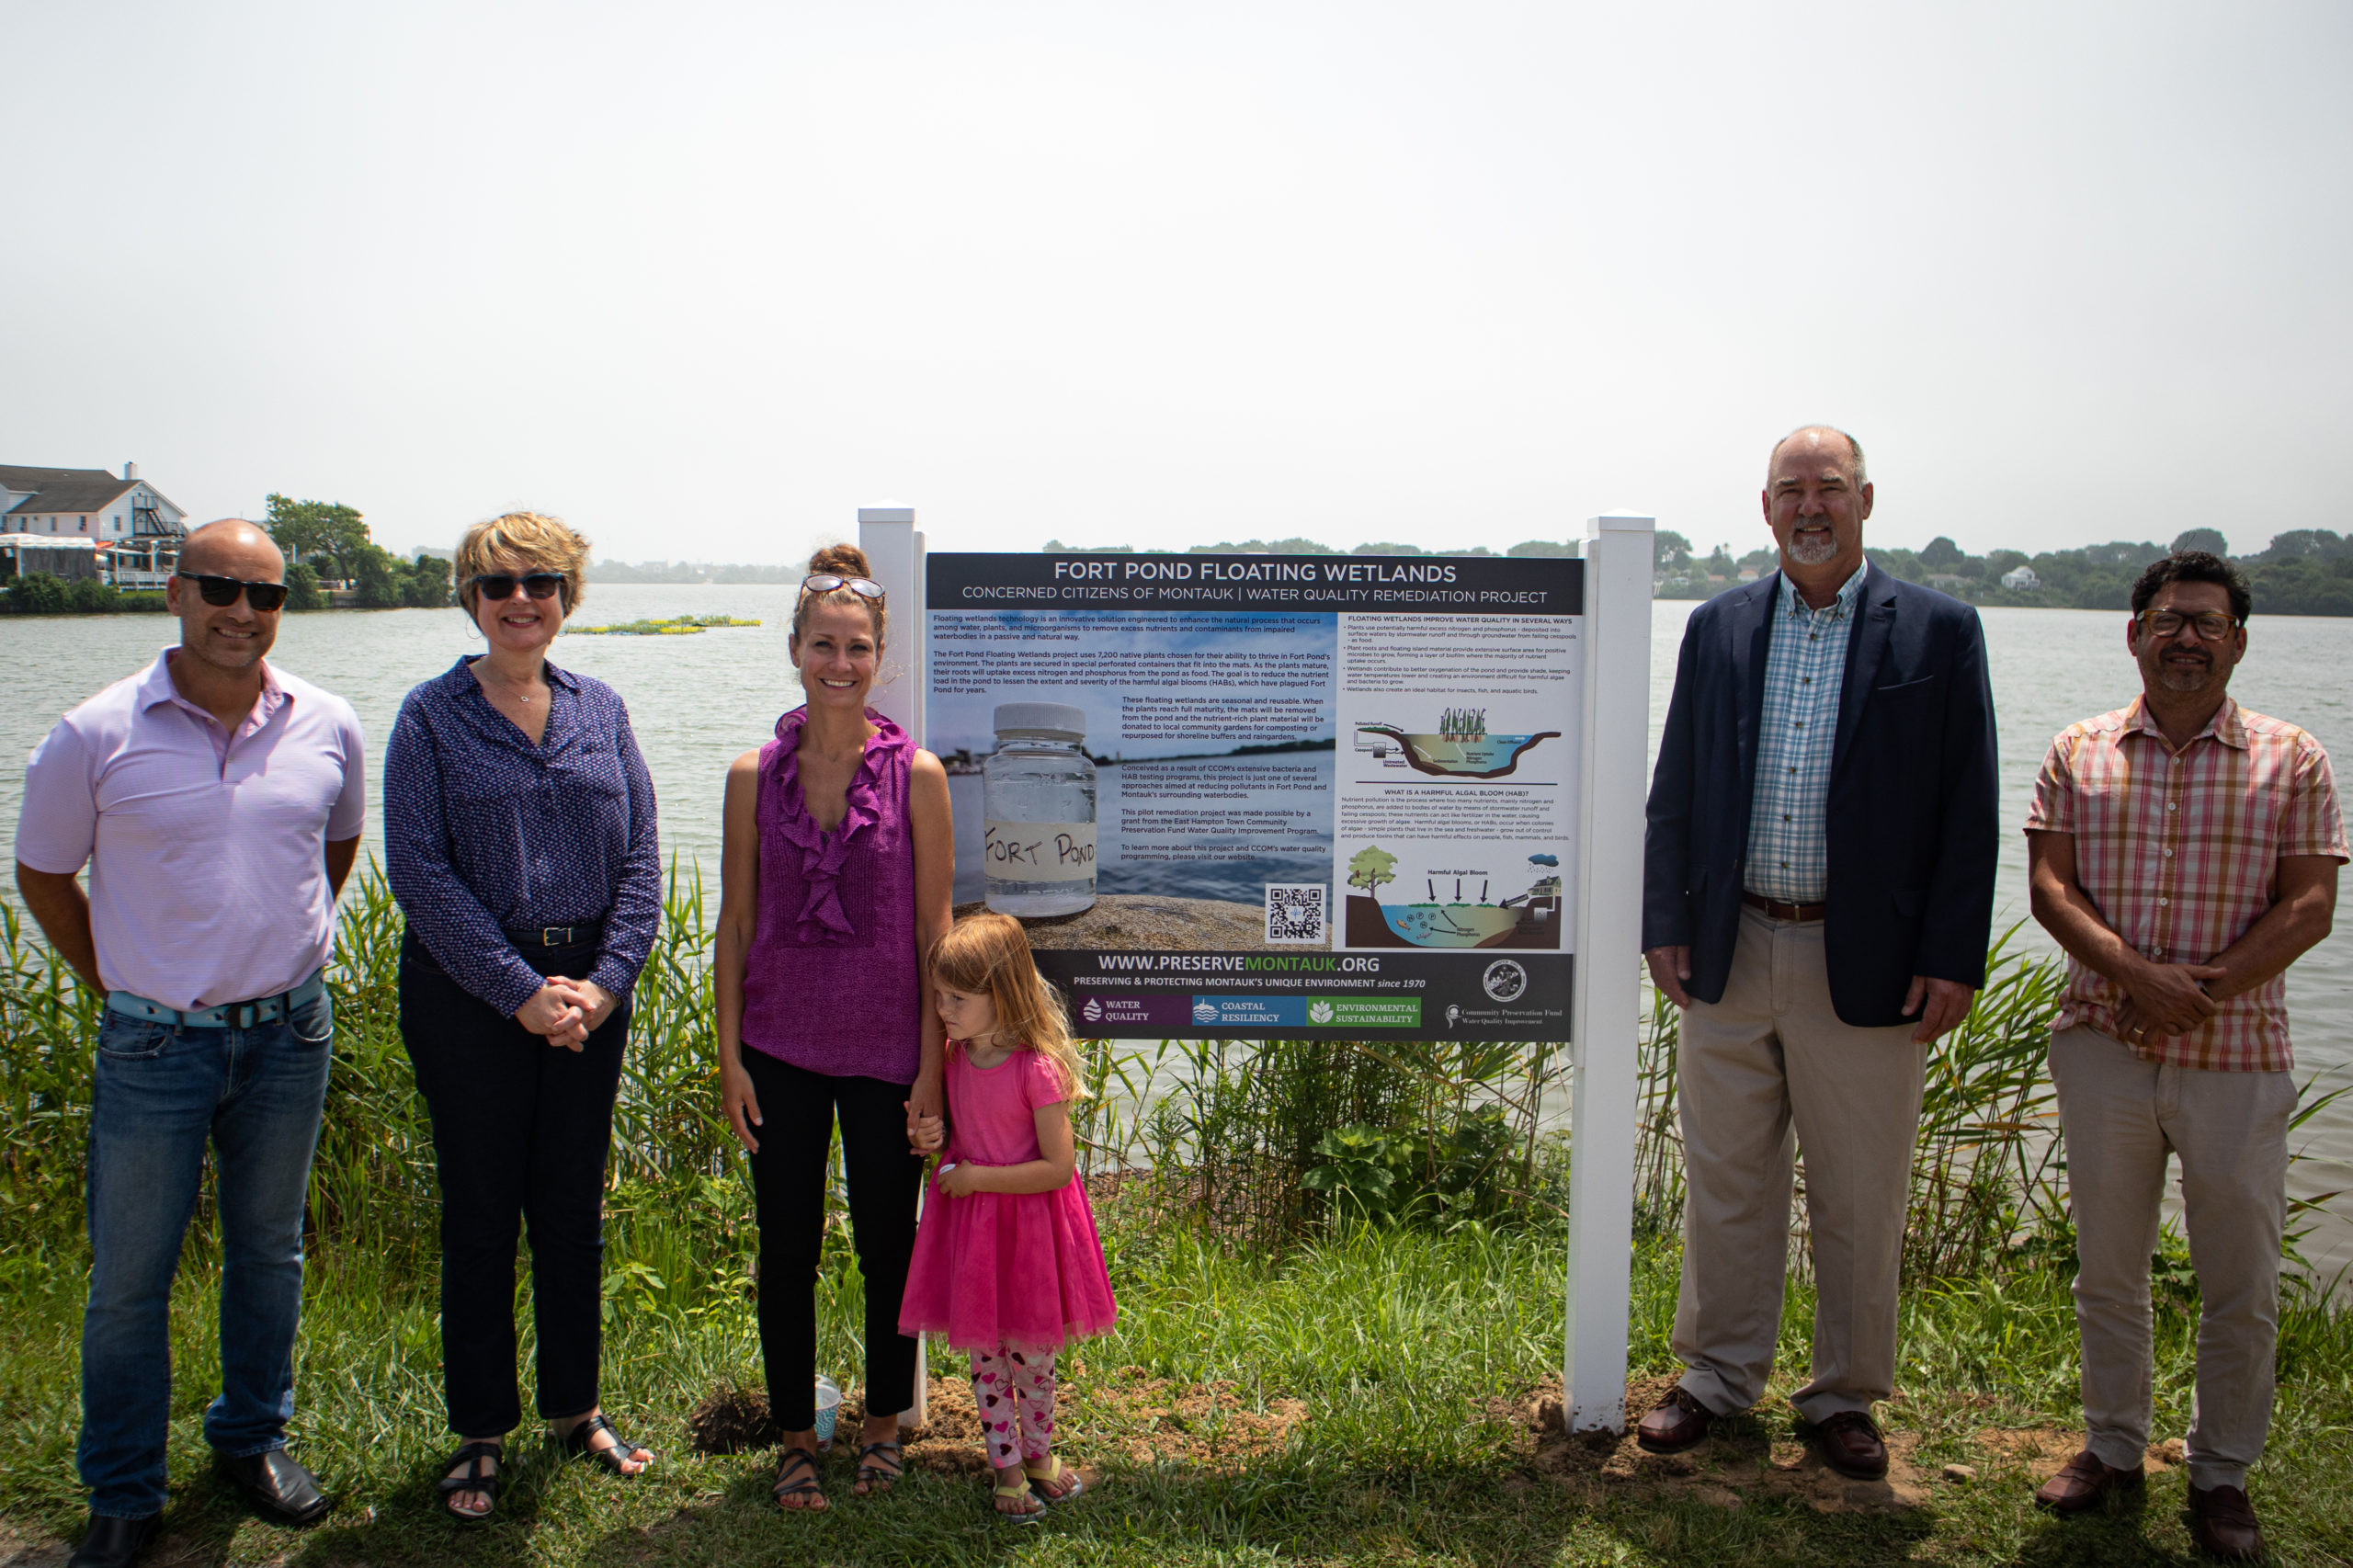 Board Member David Lys, Deputy Supervisor Kathee Burke-Gonzalez, CCOM President Laura Tooman (and her daughter), Supervisor Peter Van Scoyoc and CCOM Chairman David Freudenthal at an unveiling of new educational wetlands signs at Fort Pond earlier this month.